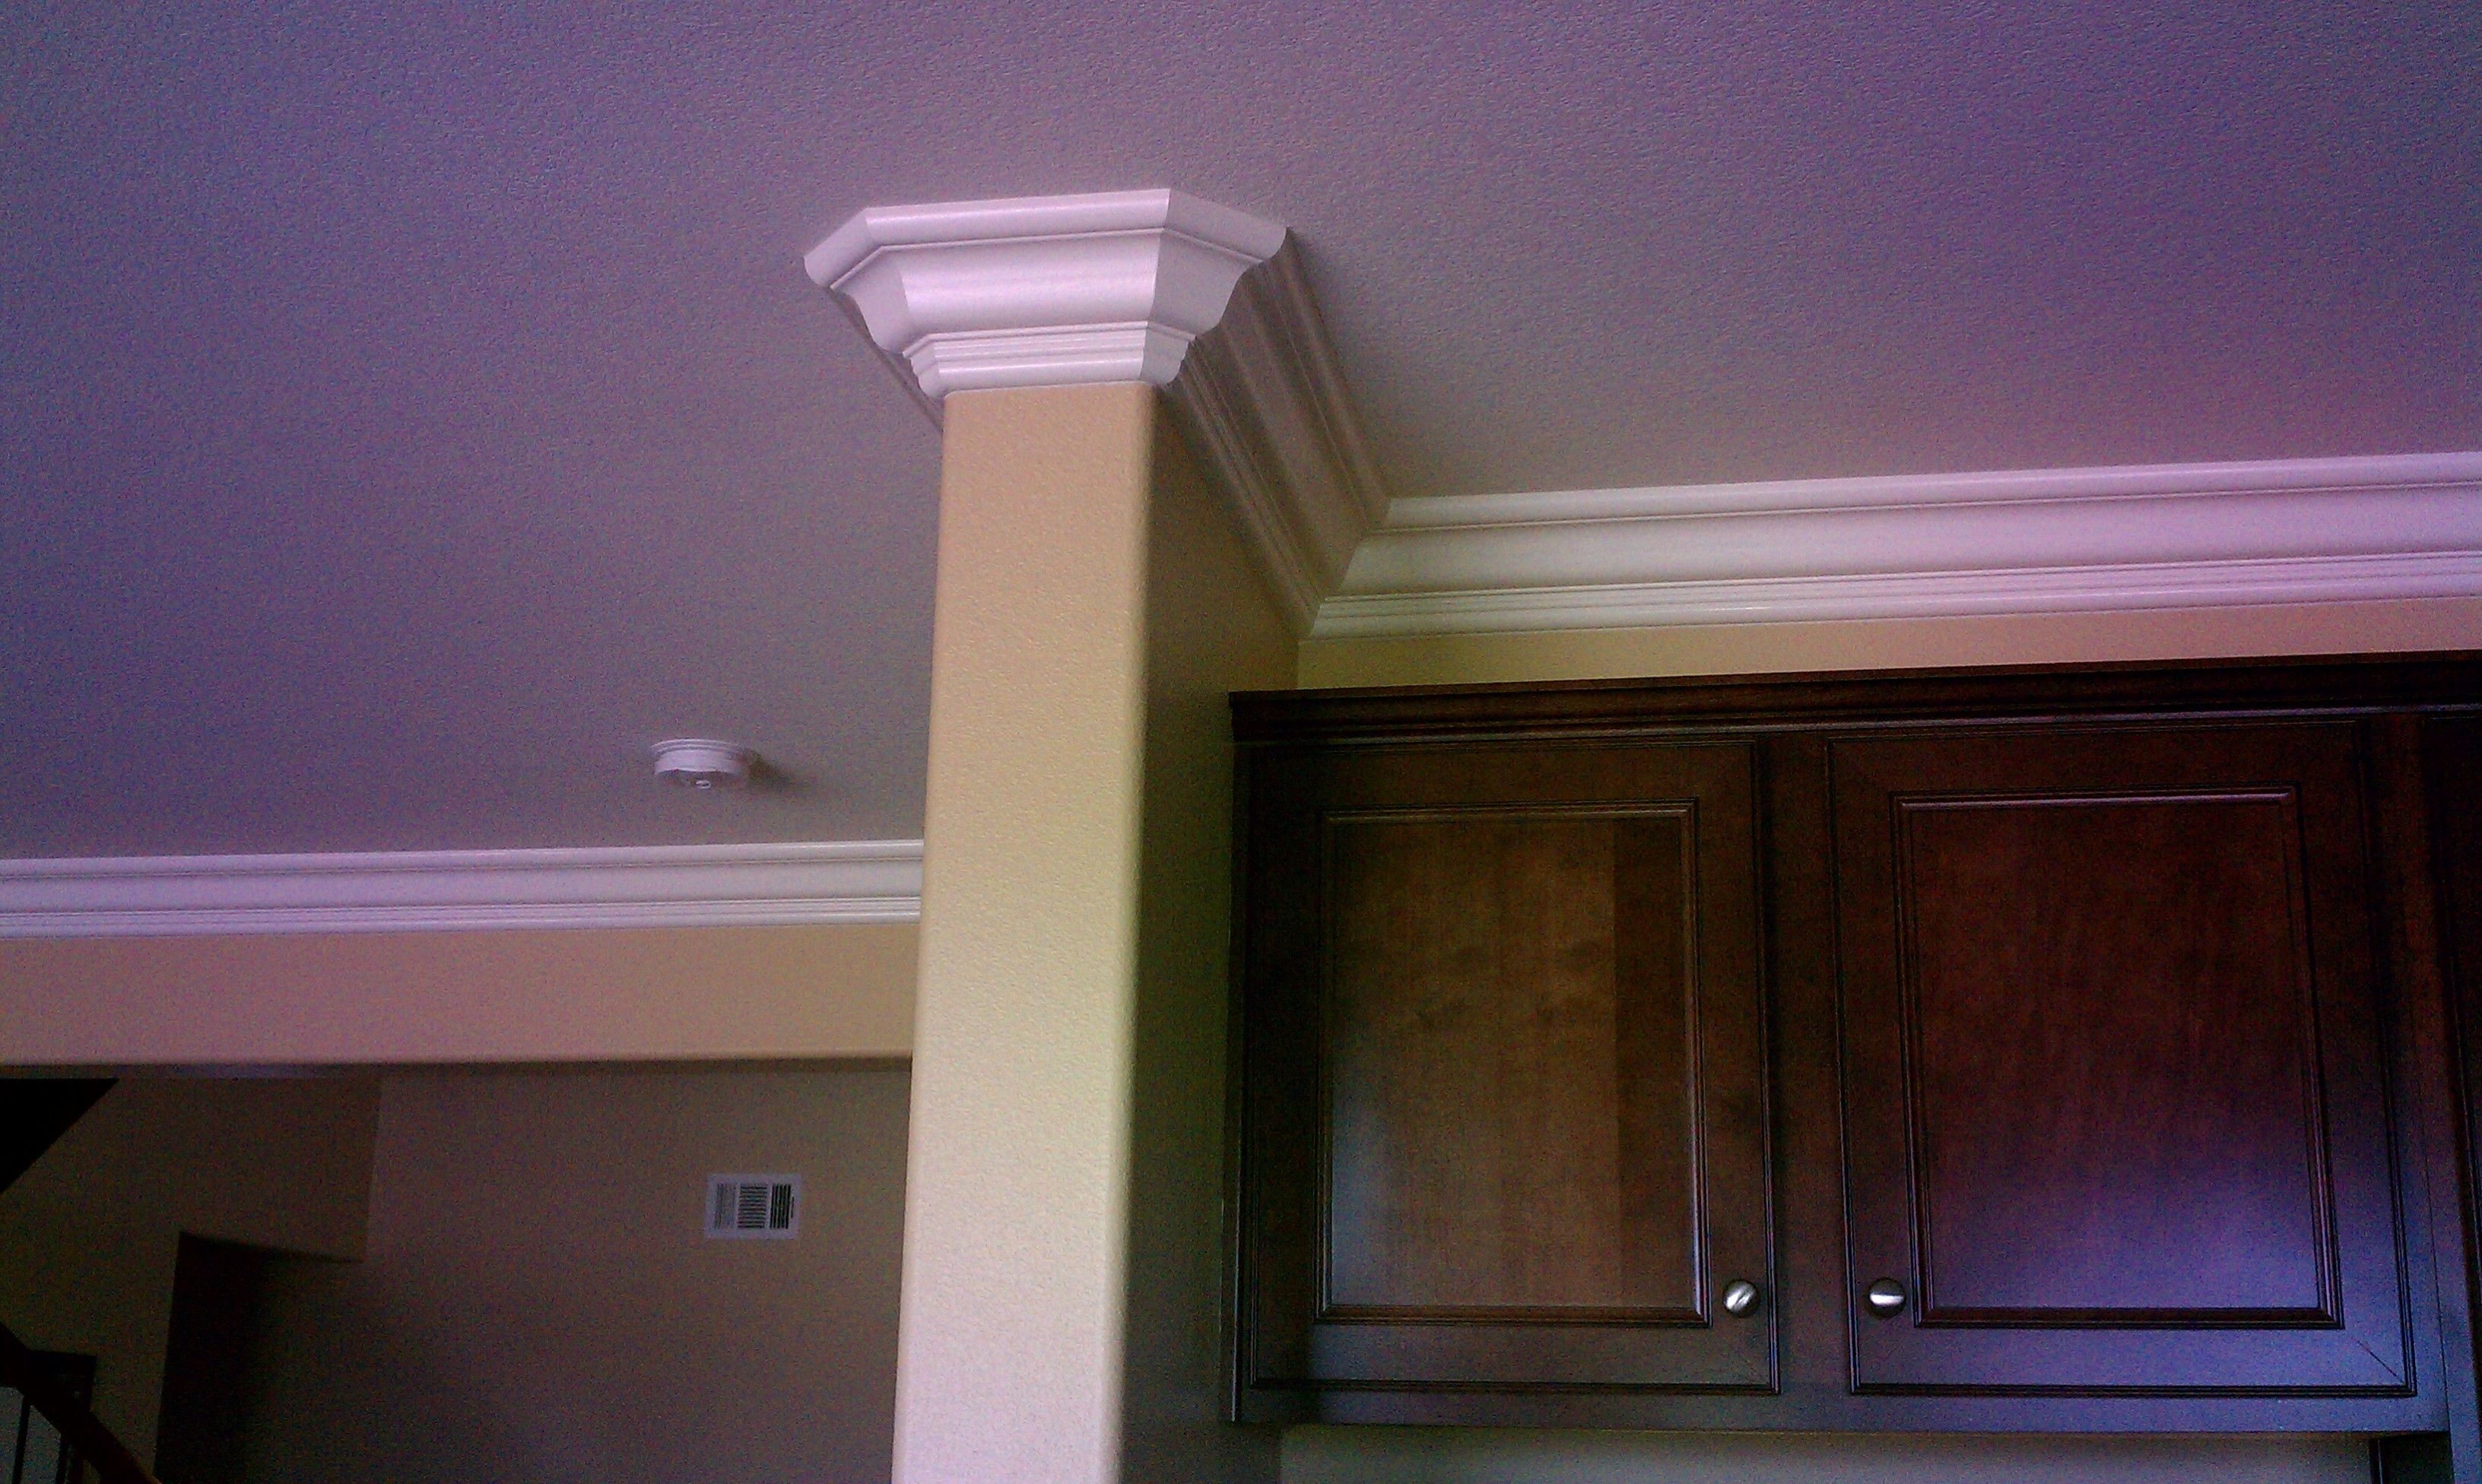 How to cut base molding around wall vent - This Is A 6 Crown Molding Wrapping Around A Wall And Heading Into A Kitchen